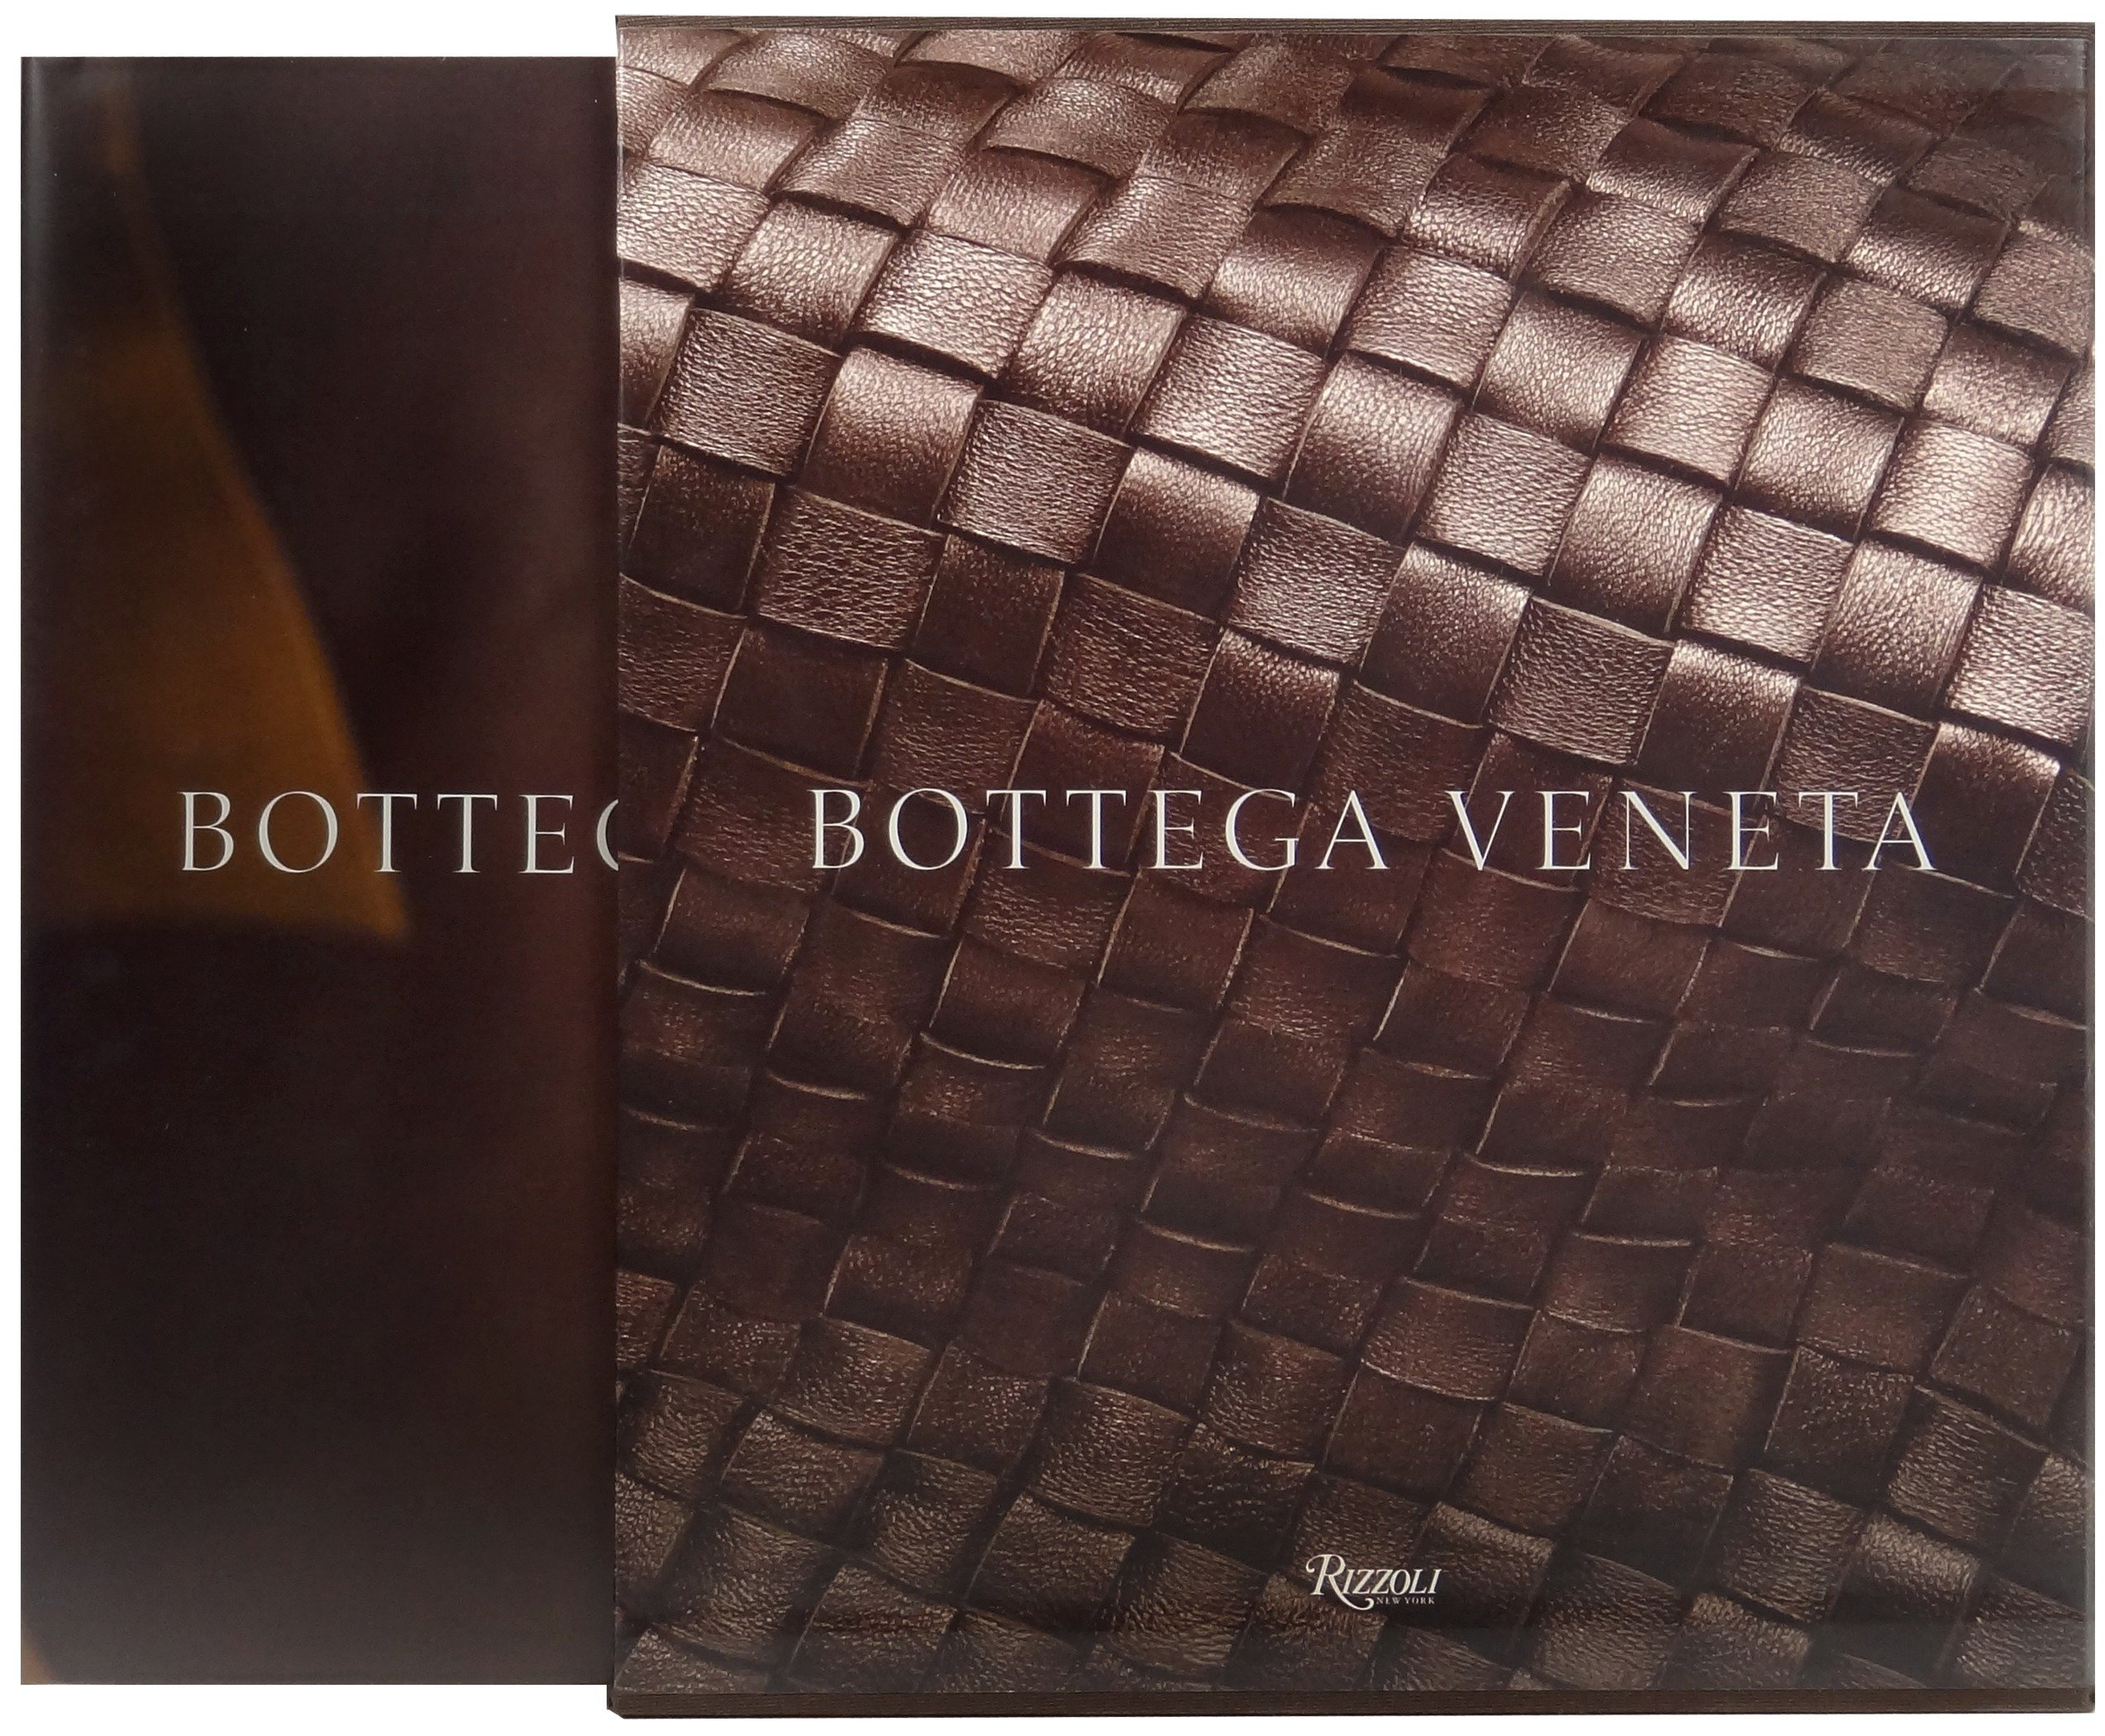 Bottega Veneta: Art of Collaboration by Brand: Rizzoli